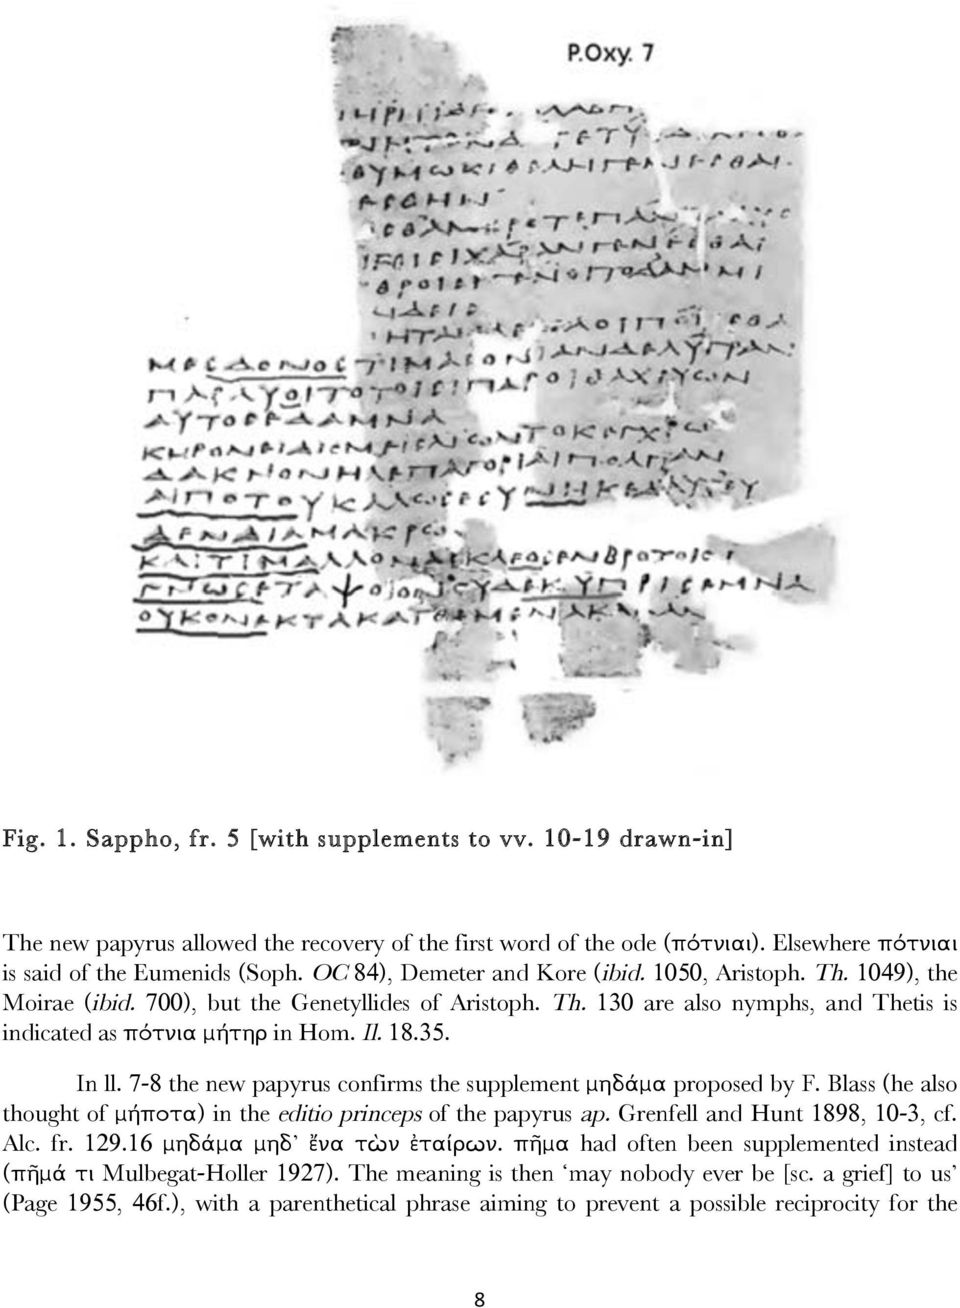 In ll. 7-8 the new papyrus confirms the supplement µηδάµα proposed by F. Blass (he also thought of µήποτα) in the editio princeps of the papyrus ap. Grenfell and Hunt 1898, 10-3, cf. Alc. fr. 129.